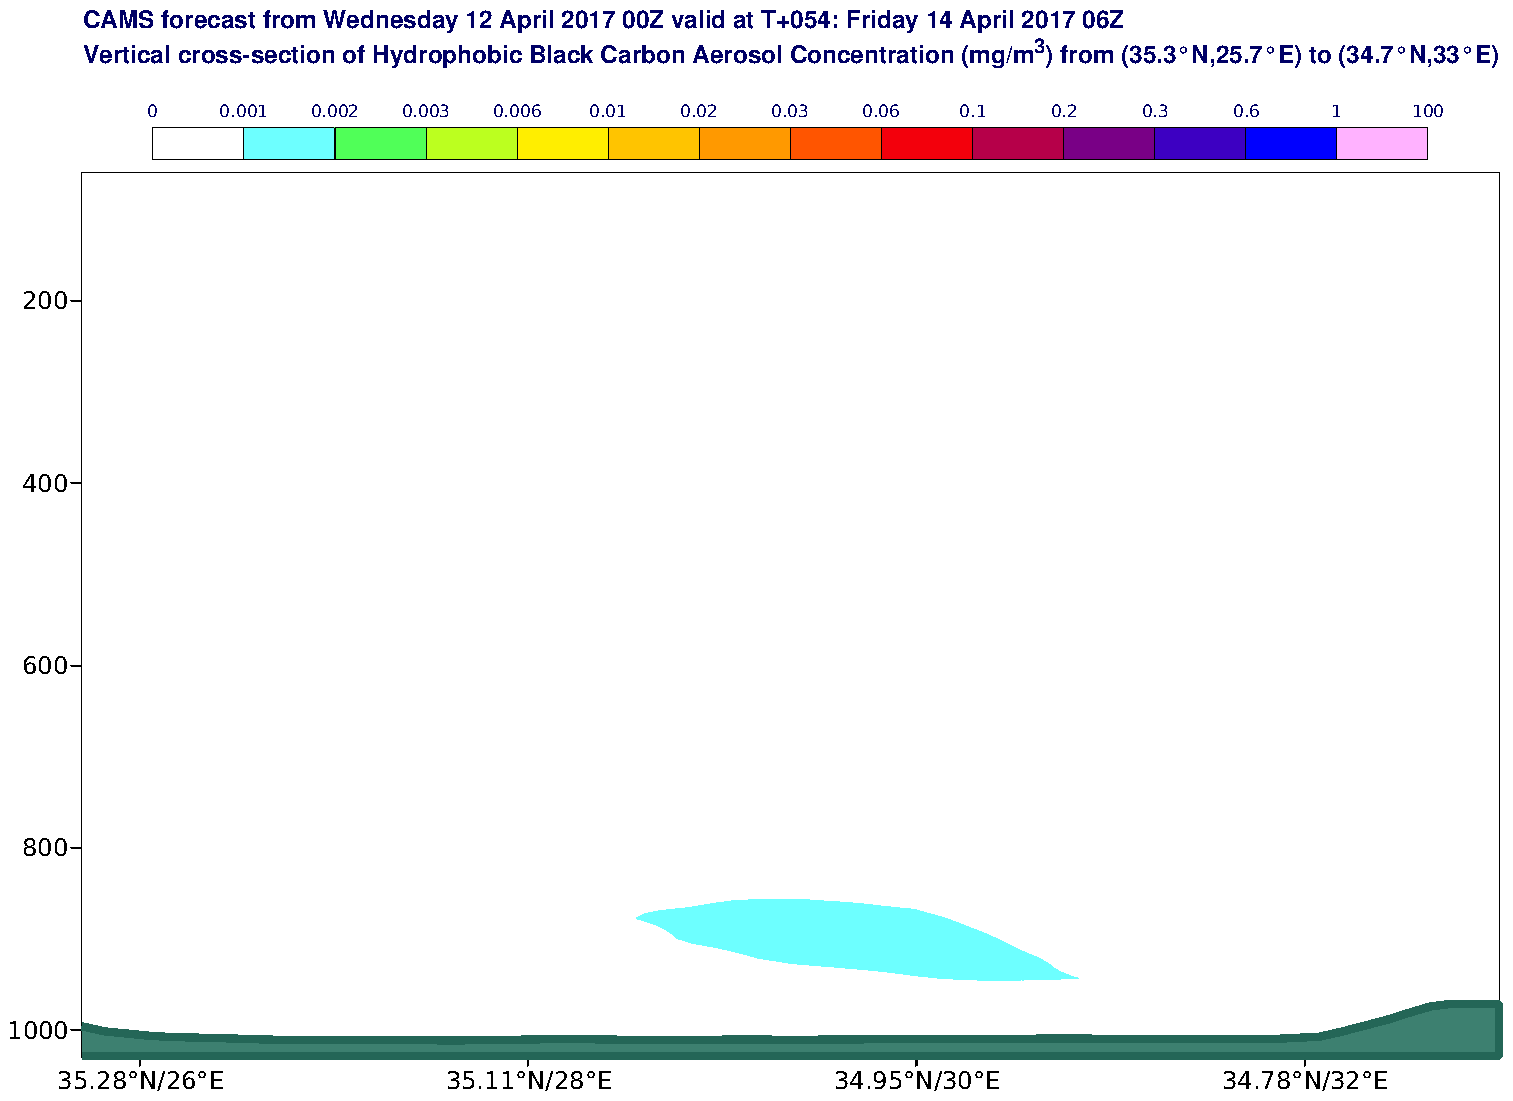 Vertical cross-section of Hydrophobic Black Carbon Aerosol Concentration (mg/m3) valid at T54 - 2017-04-14 06:00